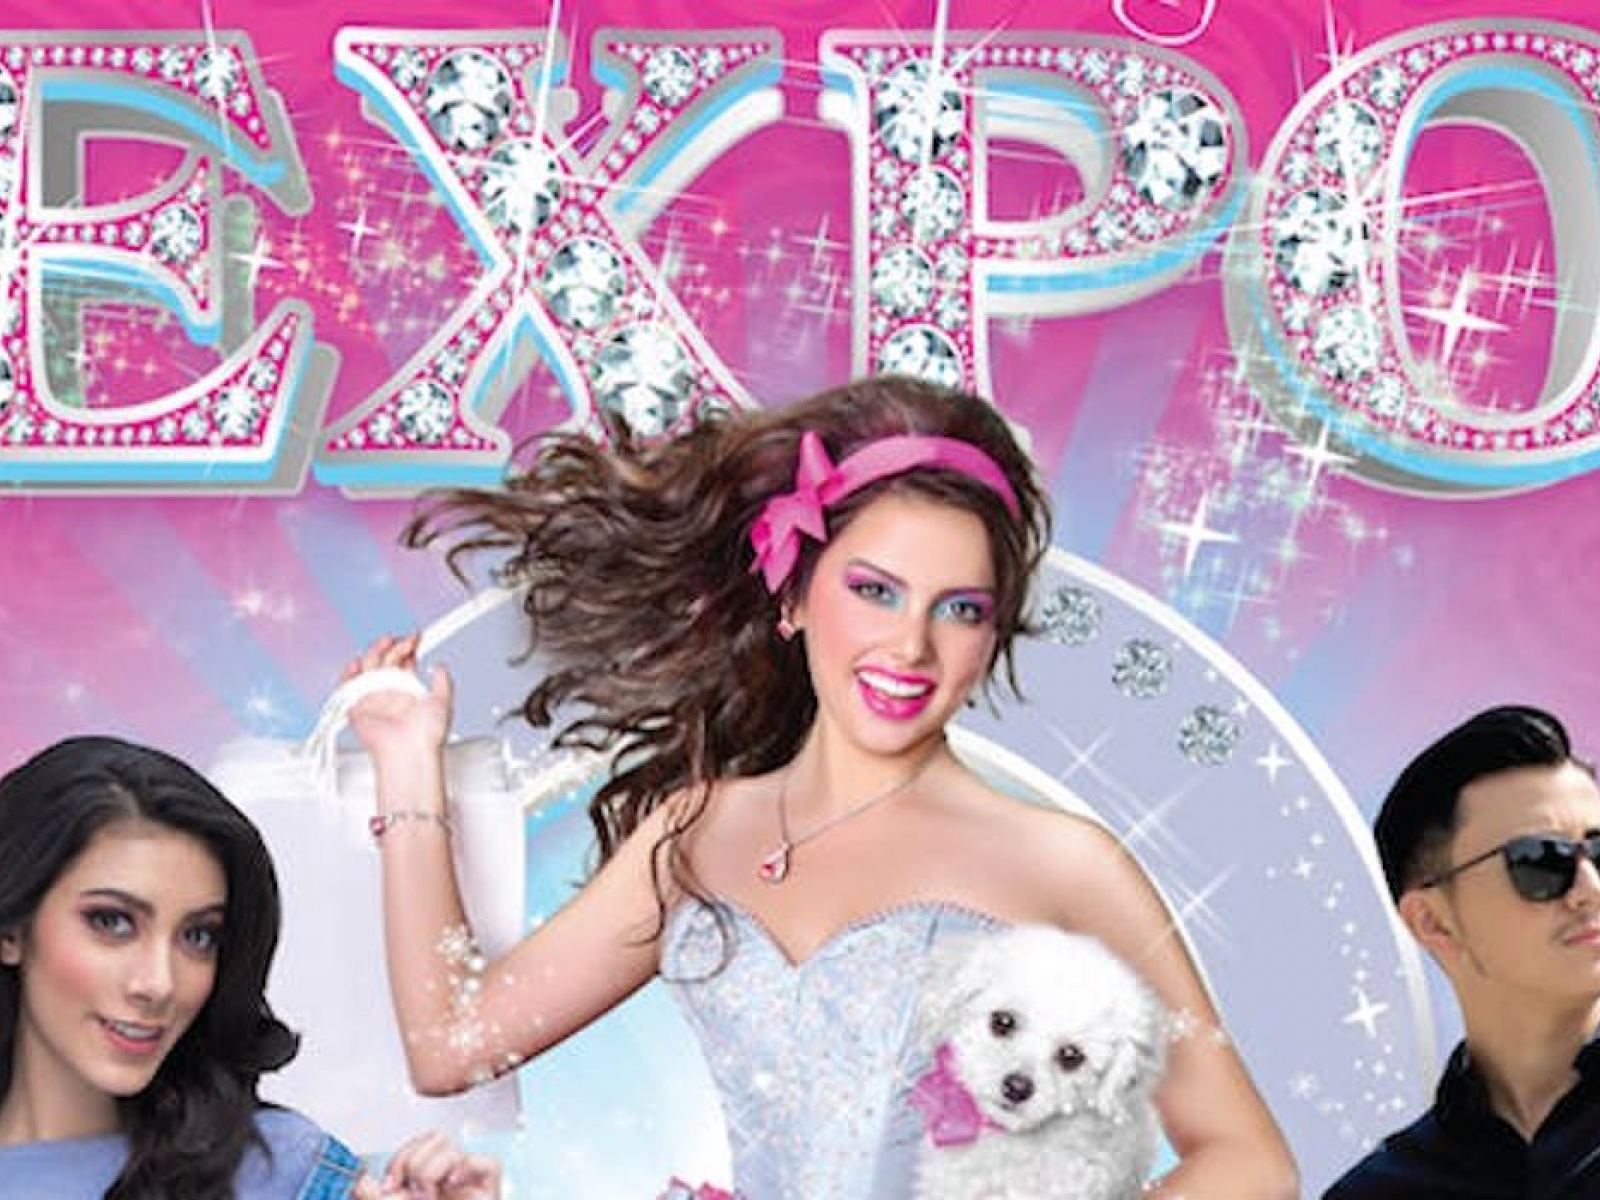 Main image for event titled Los Angeles Quinceanera Expo